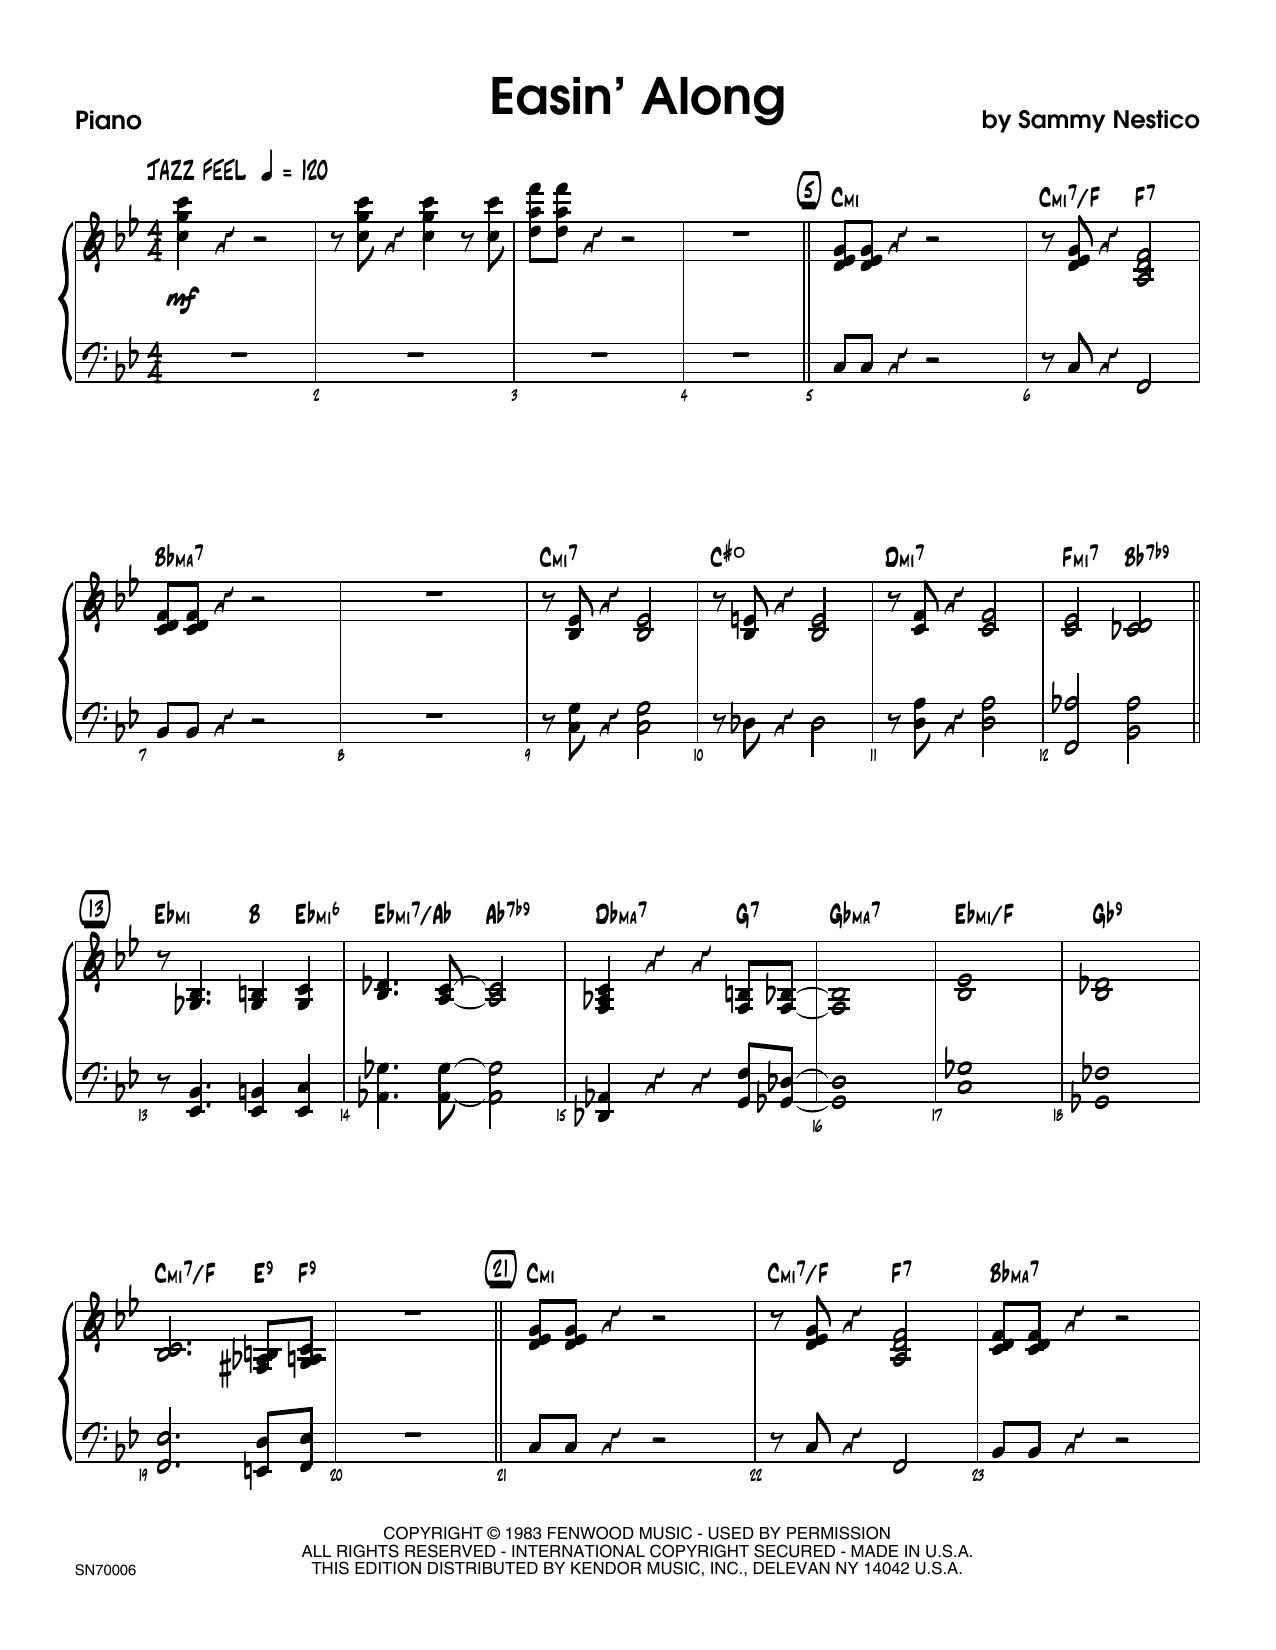 Easin' Along - Piano Sheet Music